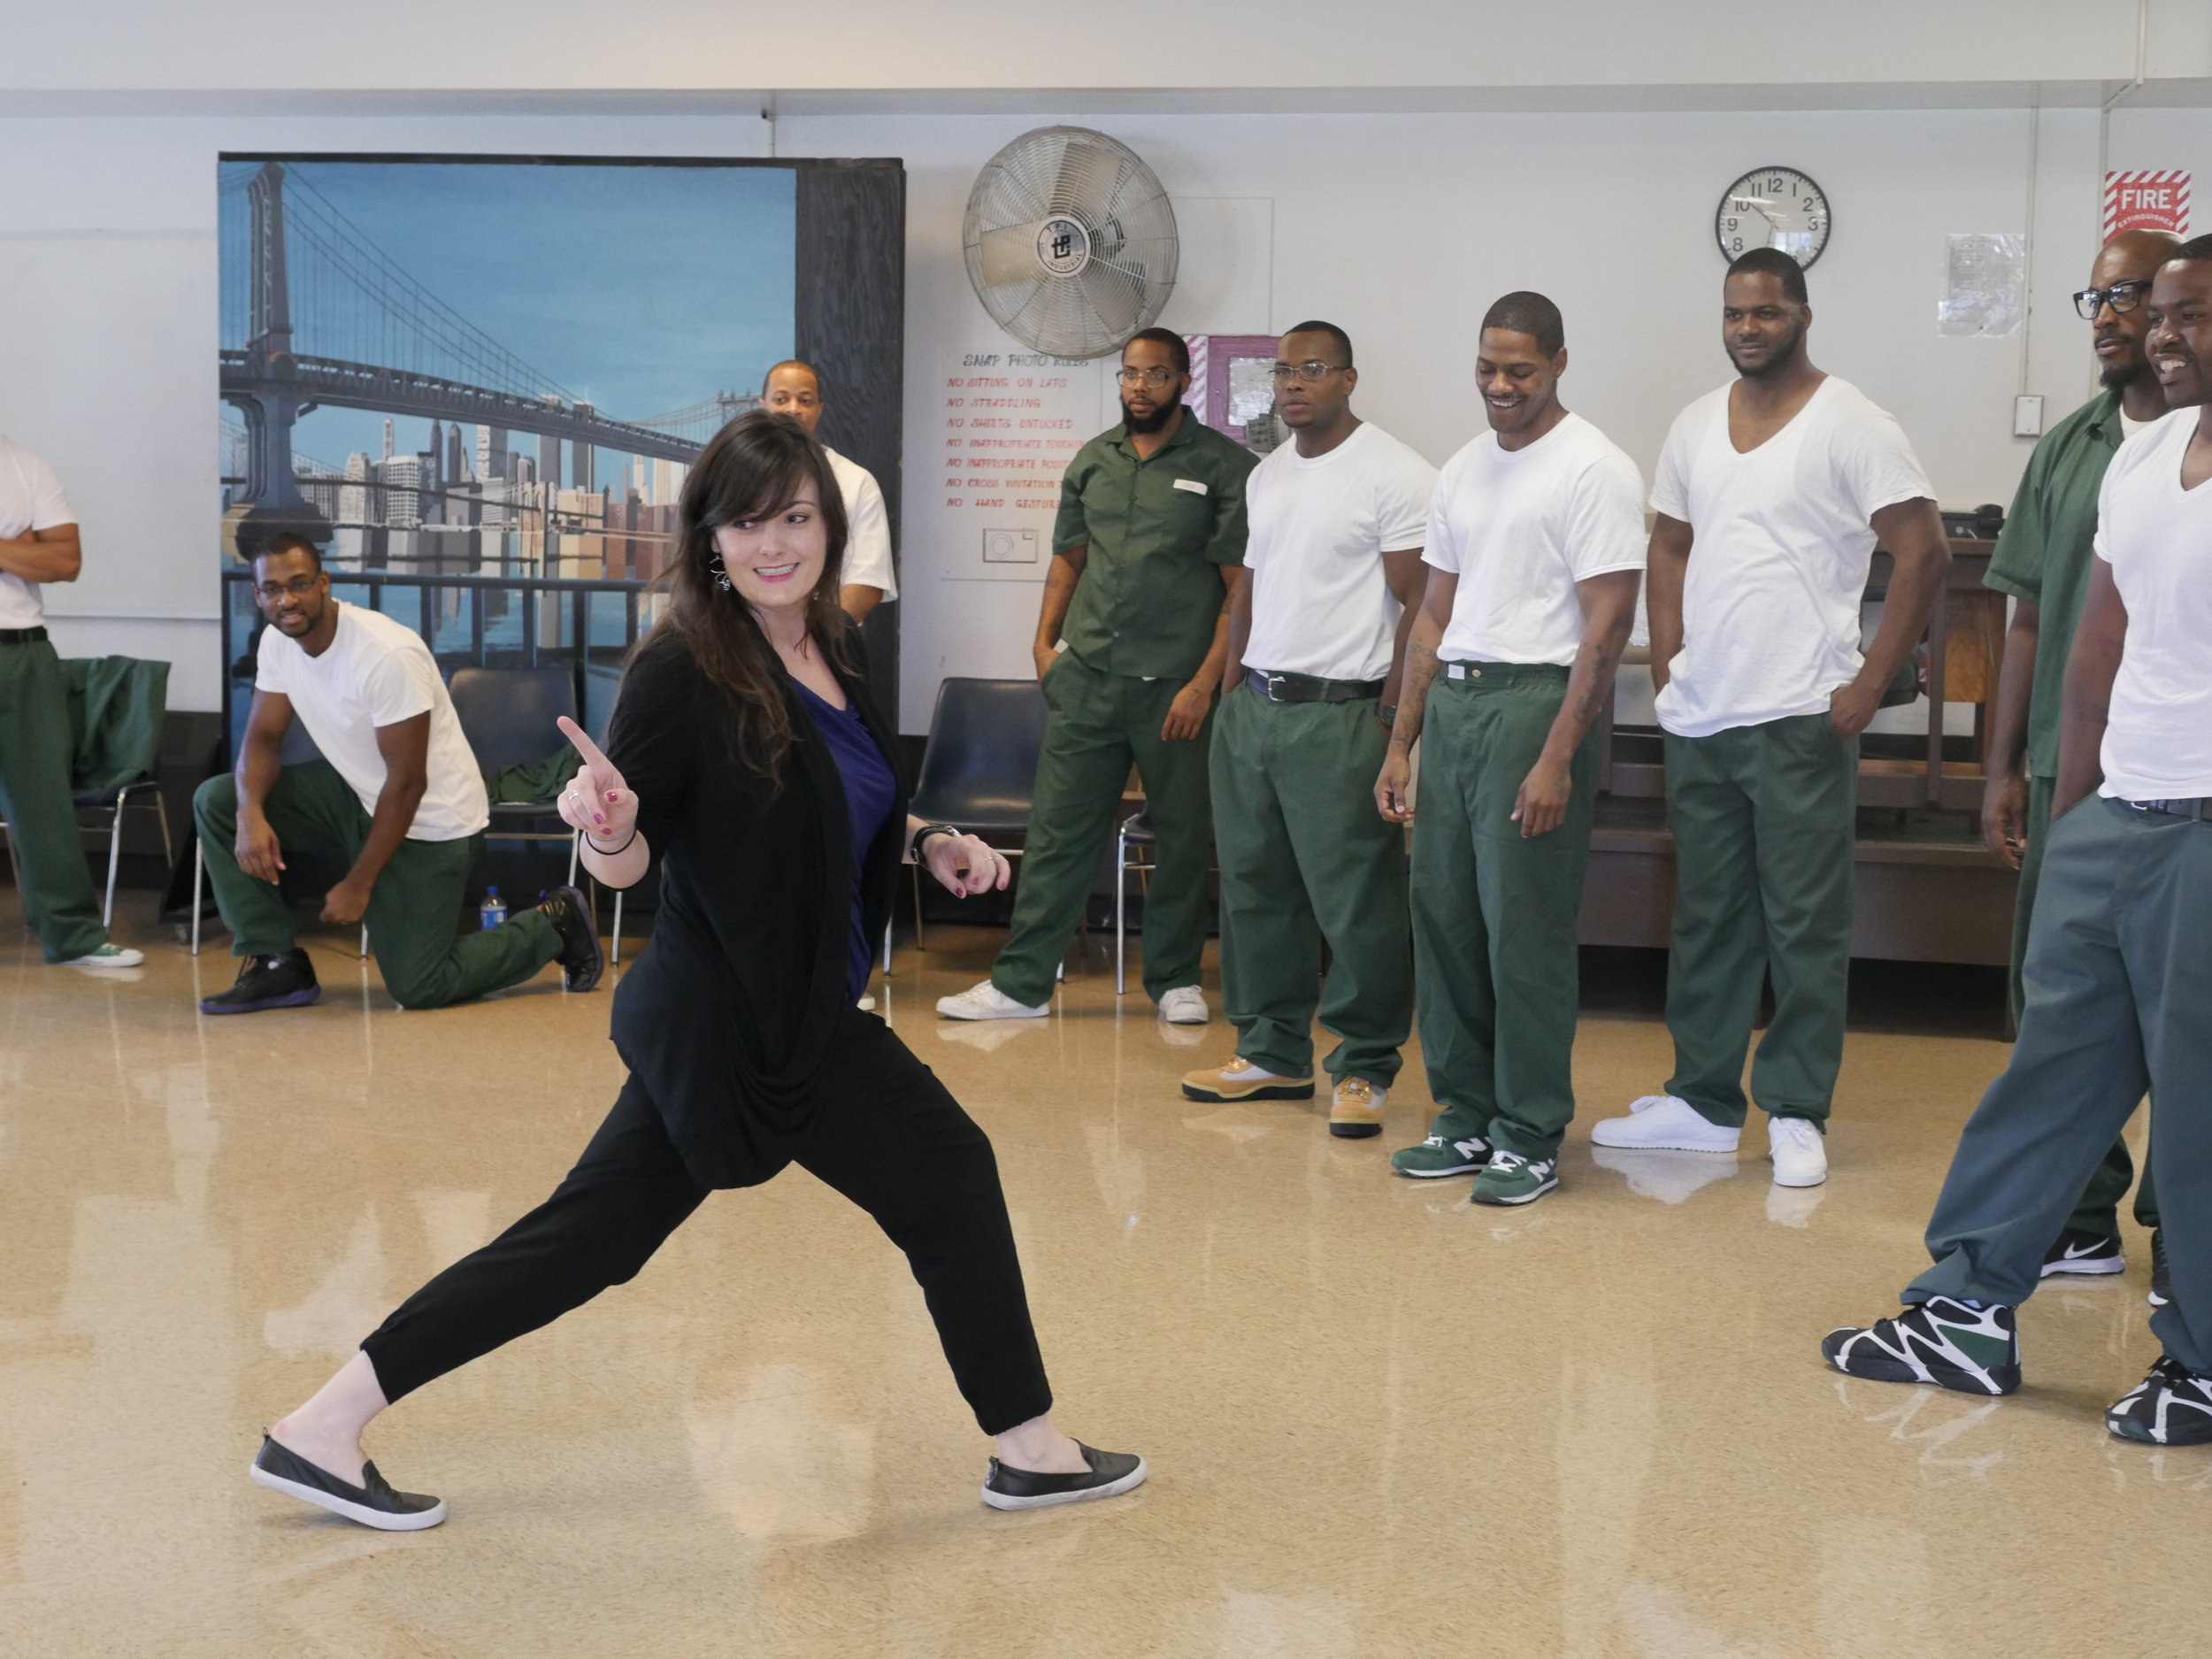 An image of Ashley directing the devised play  138  with the students of NYU's Prison Education Program at Wallkill Correctional Facility as part of her course Theatre for Social Change.